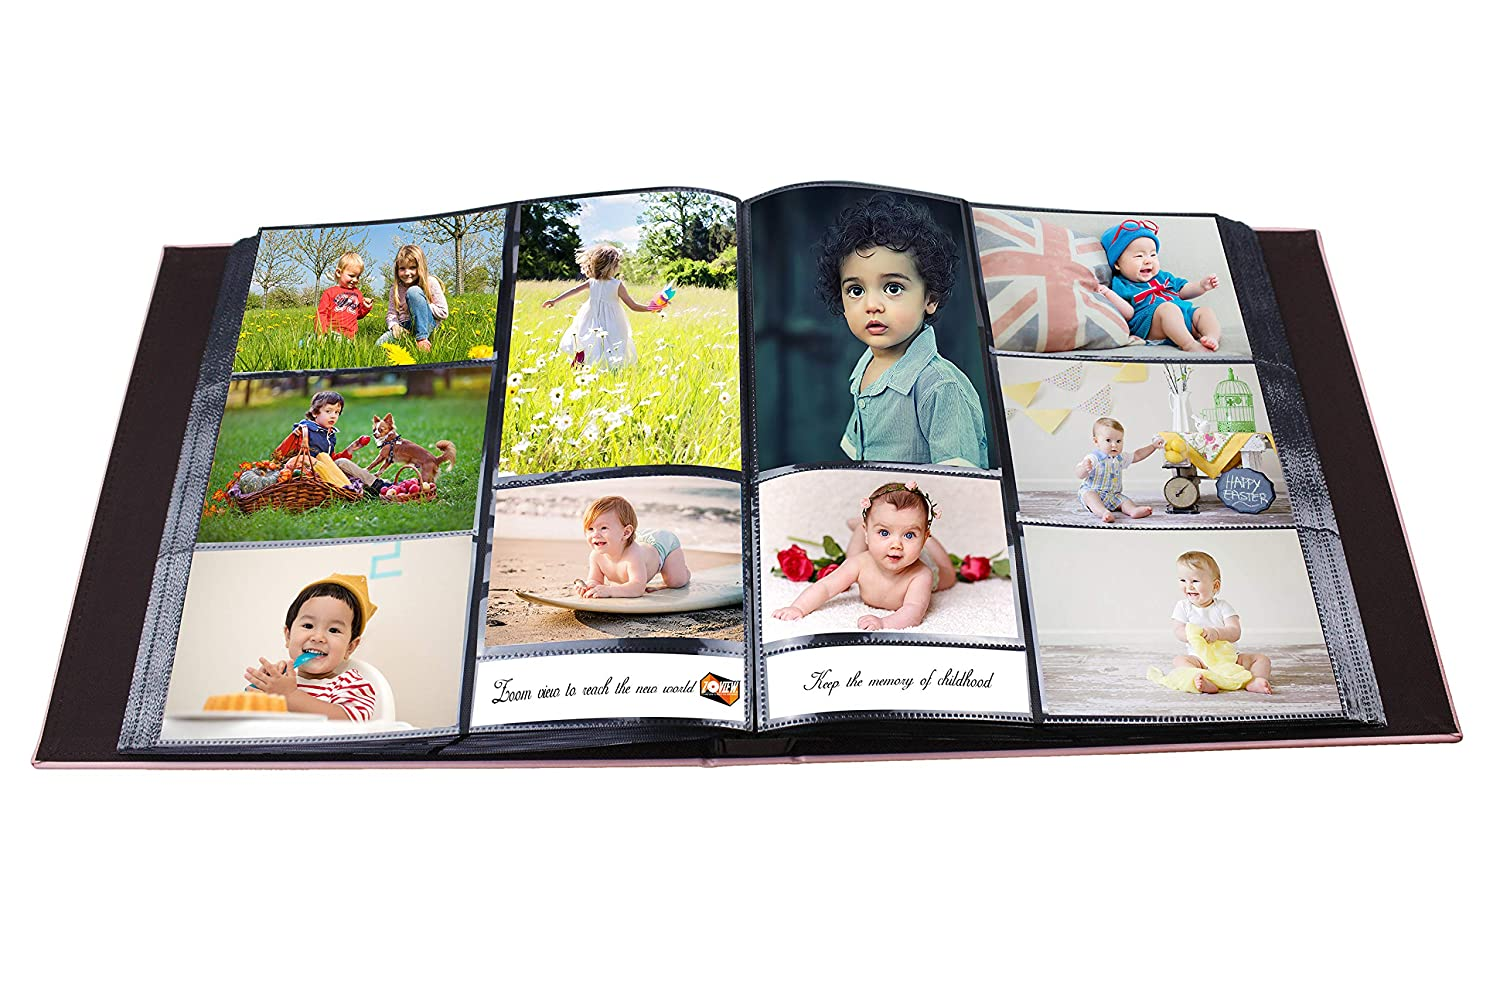 ZOVIEW 600 Horizontal and Vertical Pockets Photo Album Holds 3.5x5 Leather Cover memo Album slots album 5x7 photos,Large Capacity Deluxe Sewn Bonded Leather Albums 4x6 Black, Large